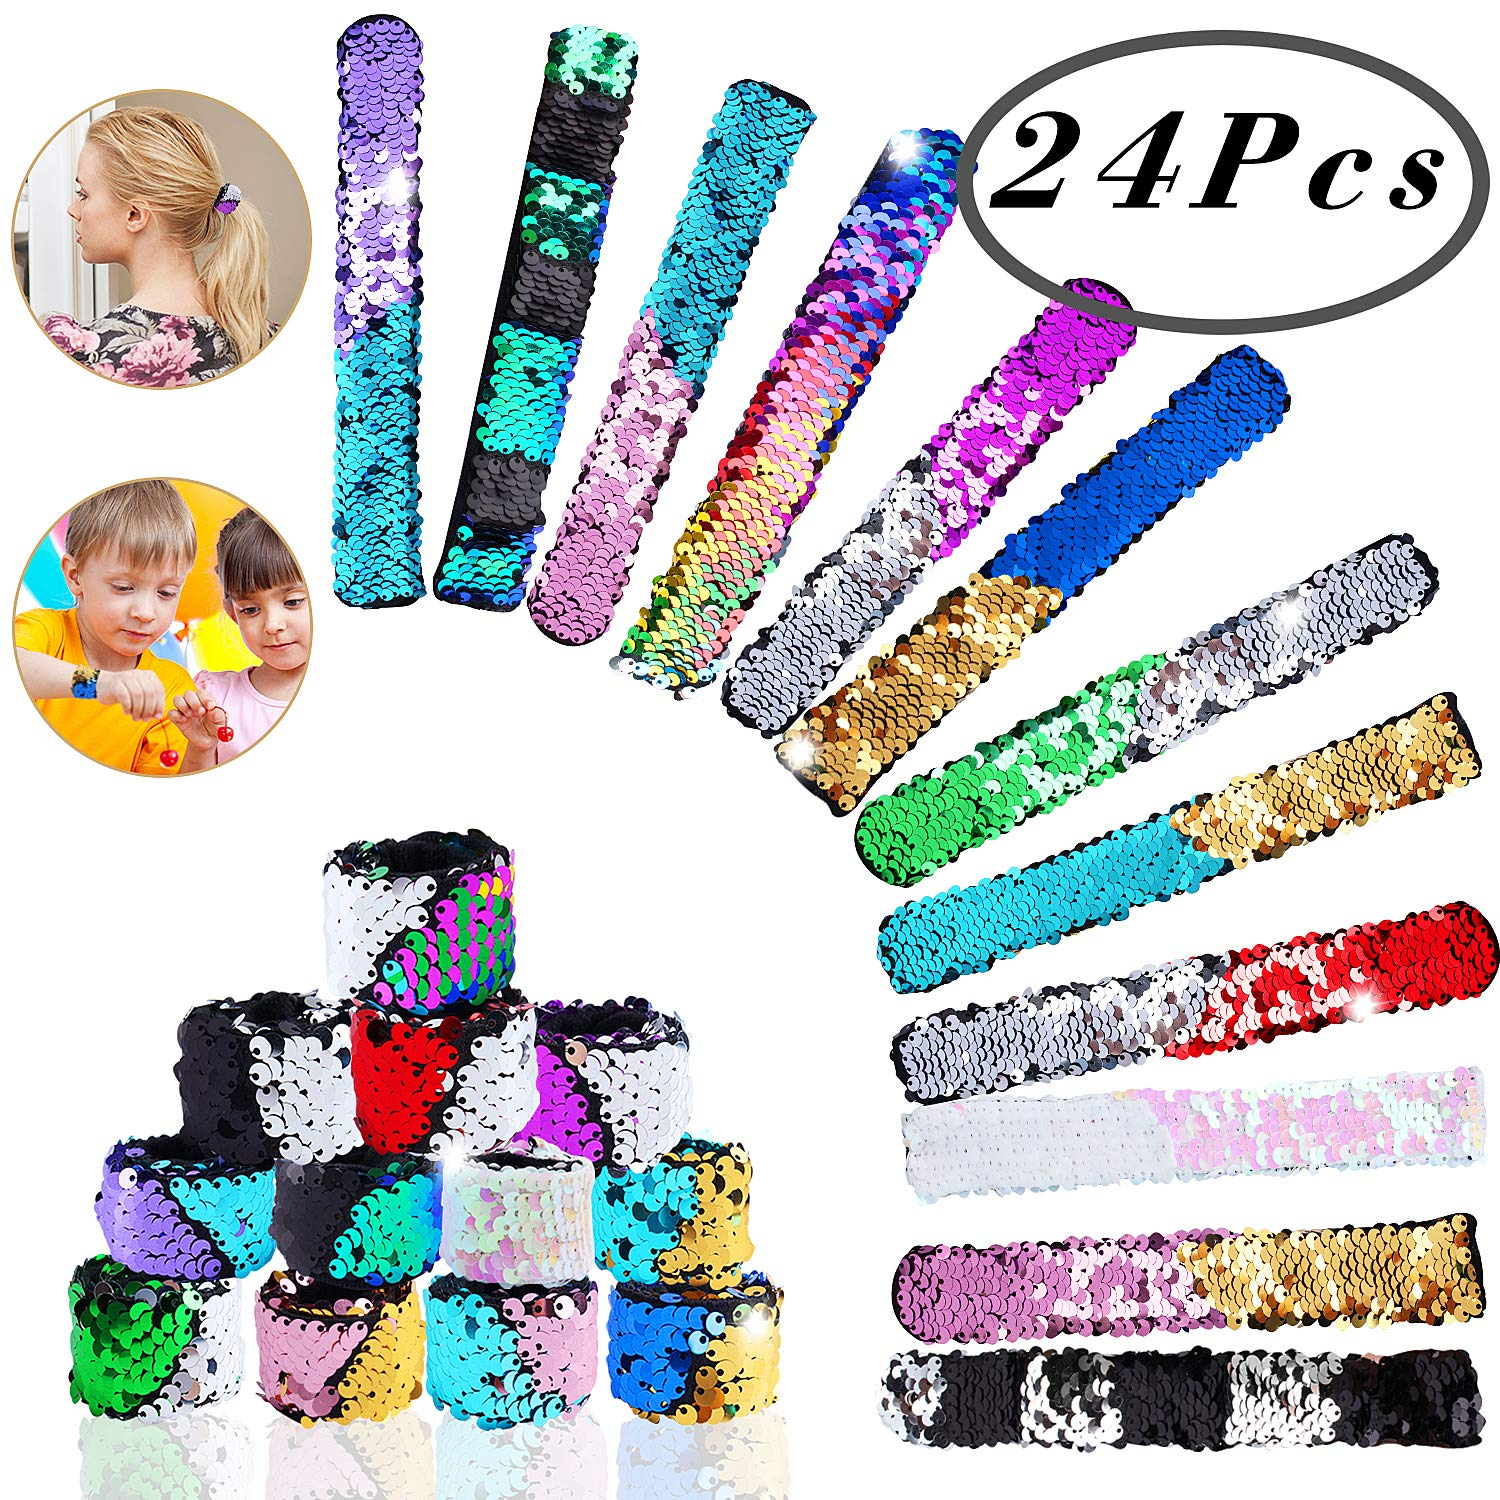 Hicdaw Mermaid Slap Bracelet Sequin, 24 Pcs Sequin Slap Bracelet 24 Color Flip Sequin Bracelet Mermaid Sequin Bracelets Reversible Mermaid Bracelet Wristband Charm Slap Bracelet for Birthday Gifts